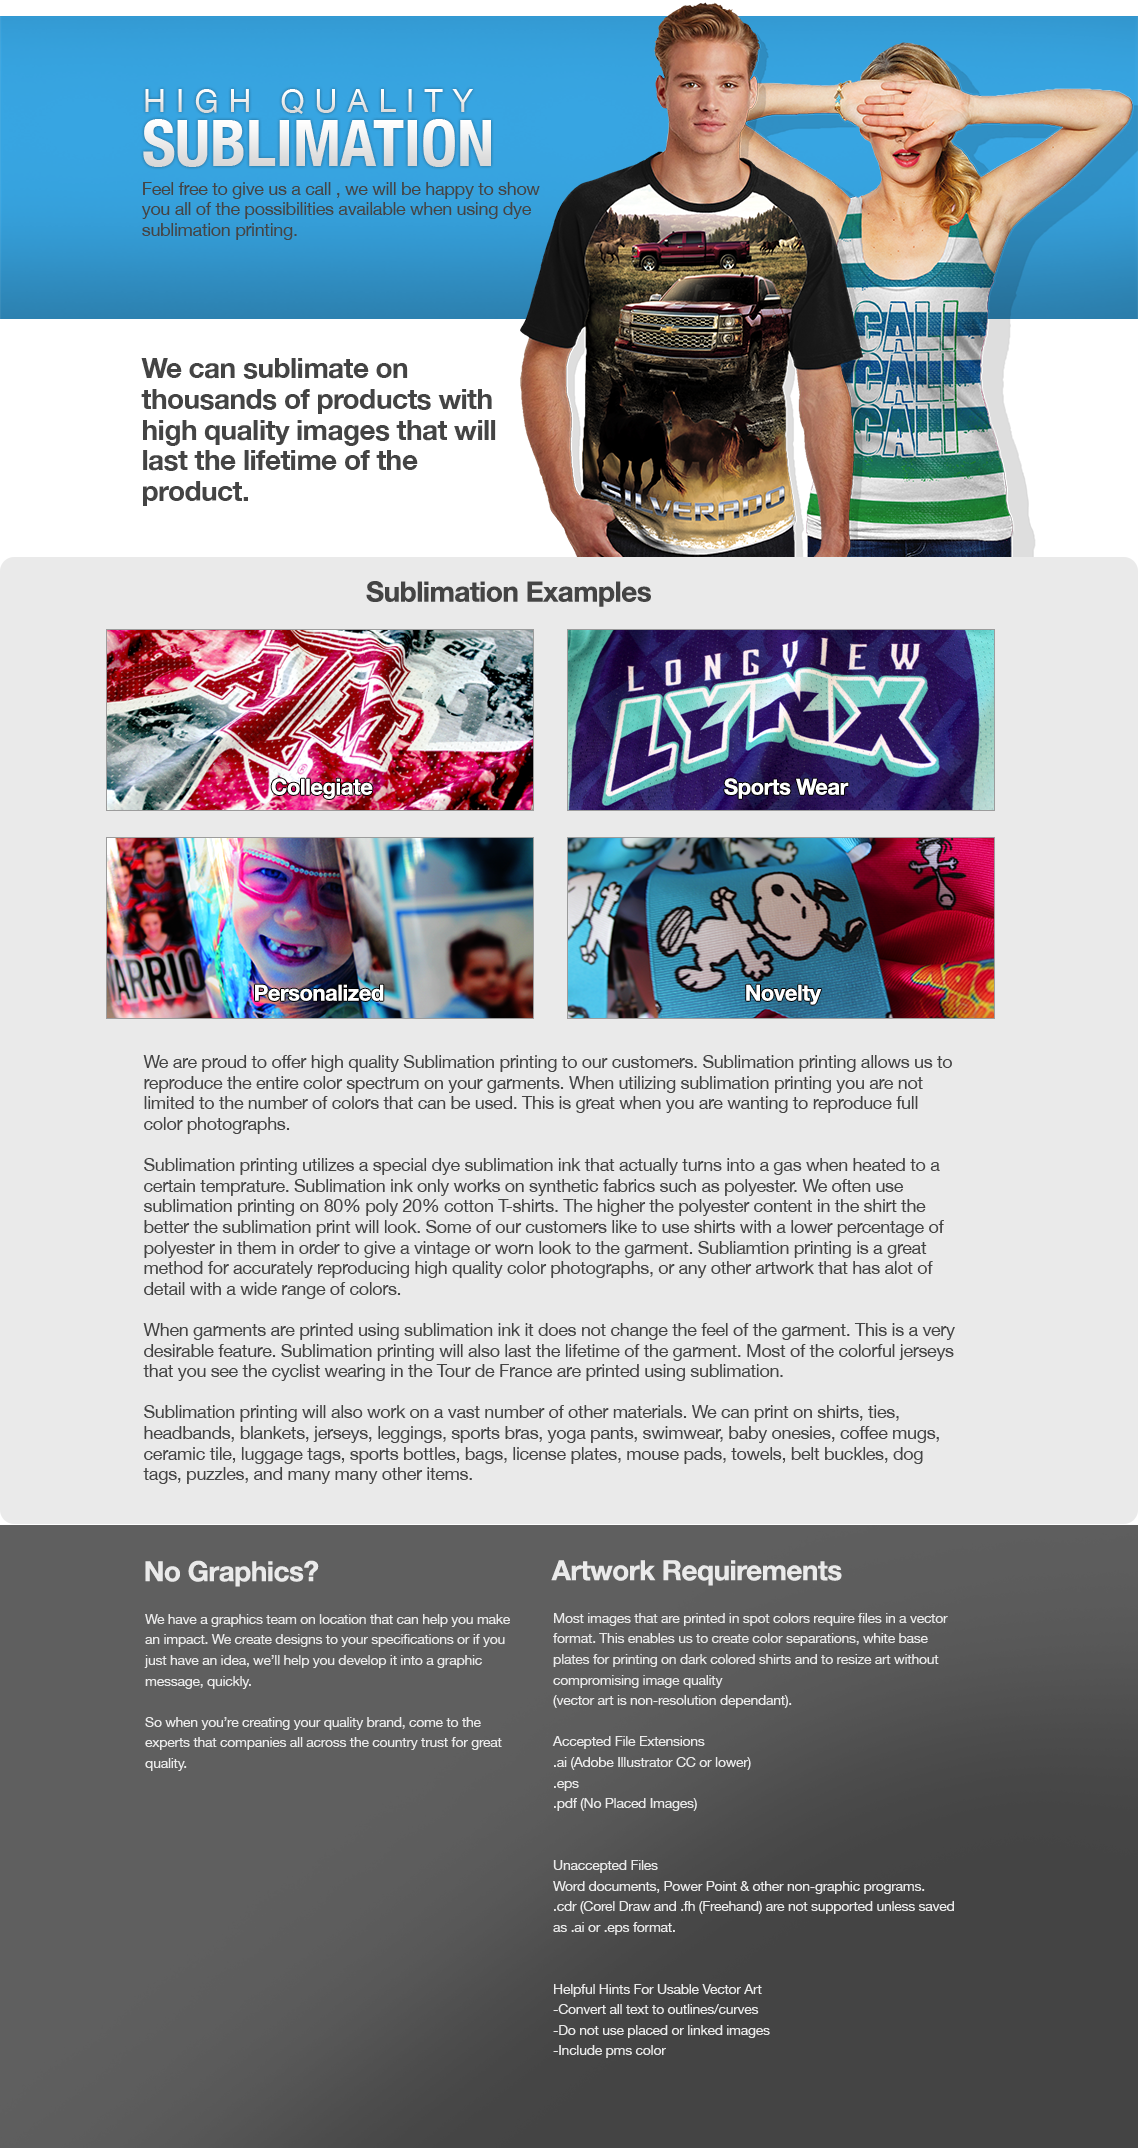 aft-sublimation-printing-page-full.png